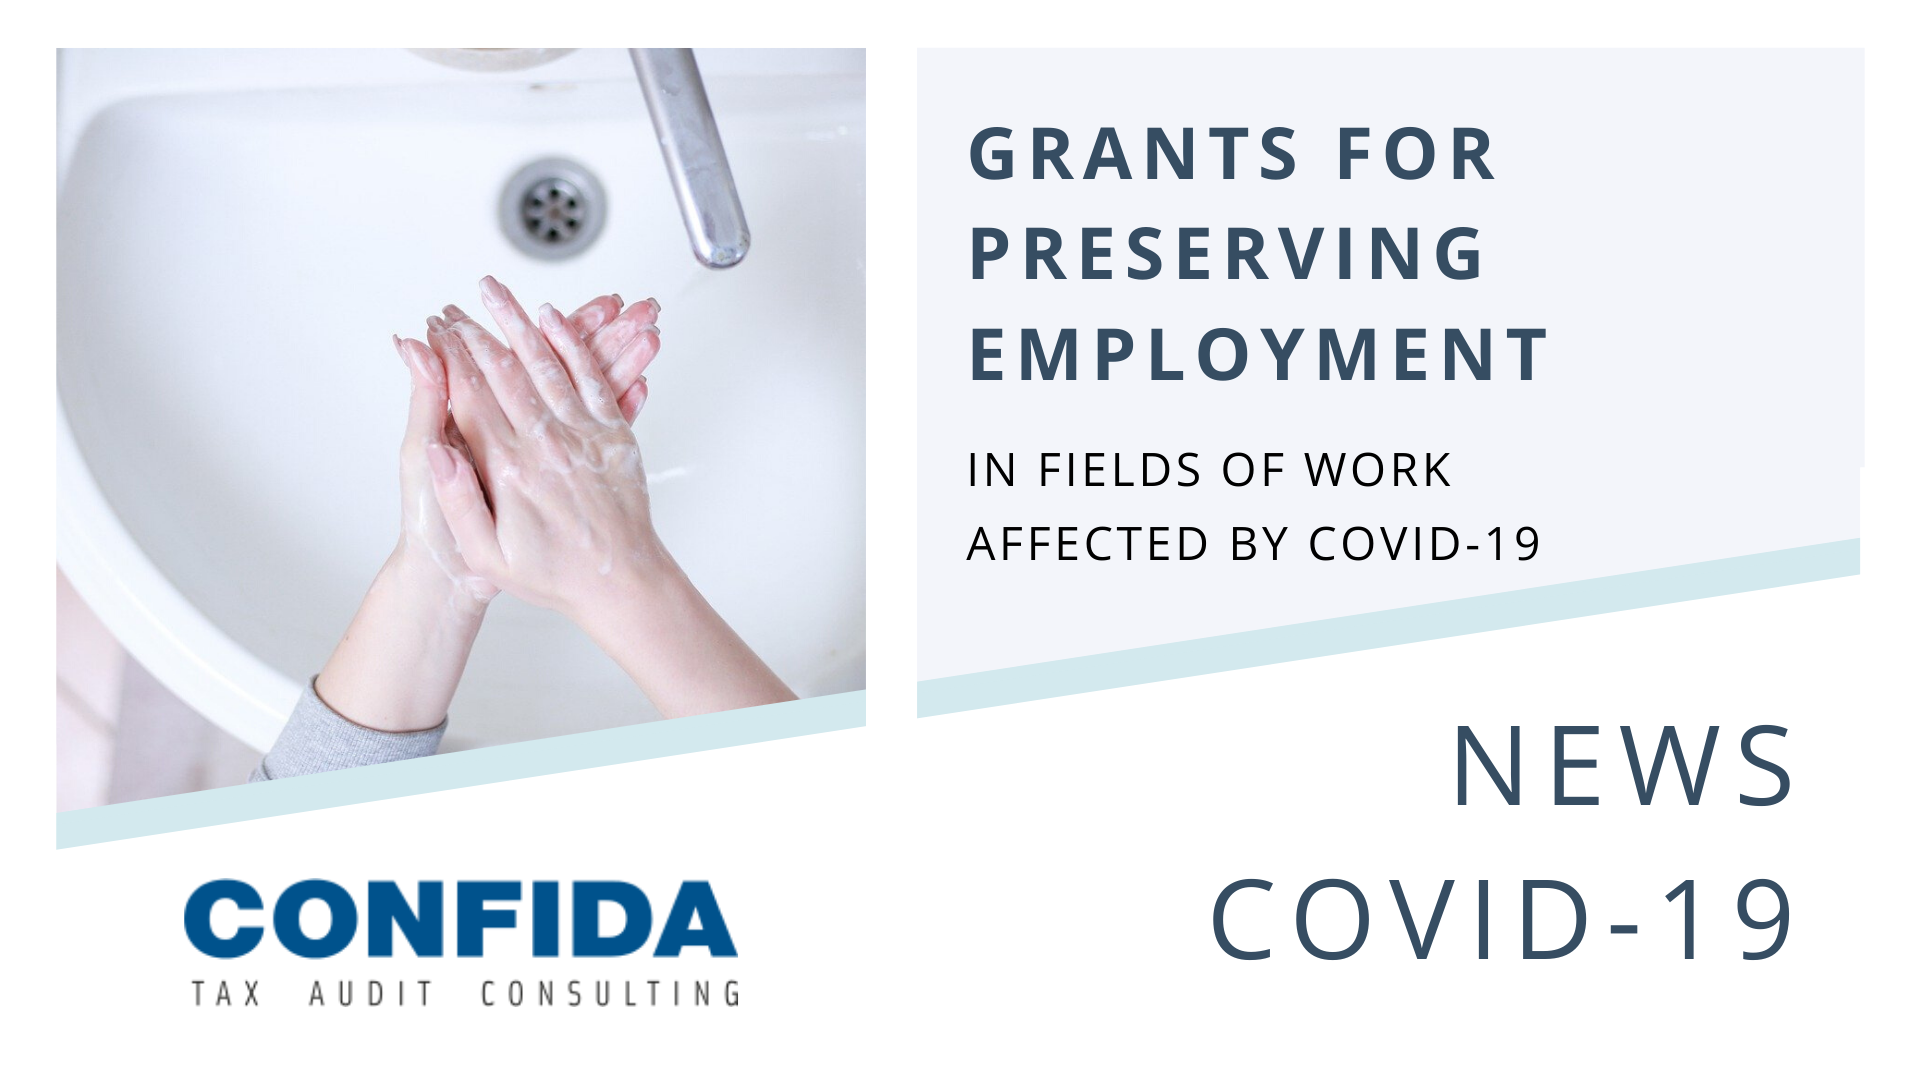 COVID-19: Grants for Preserving Employment in Fields of Work Affected by the Coronavirus Pandemic